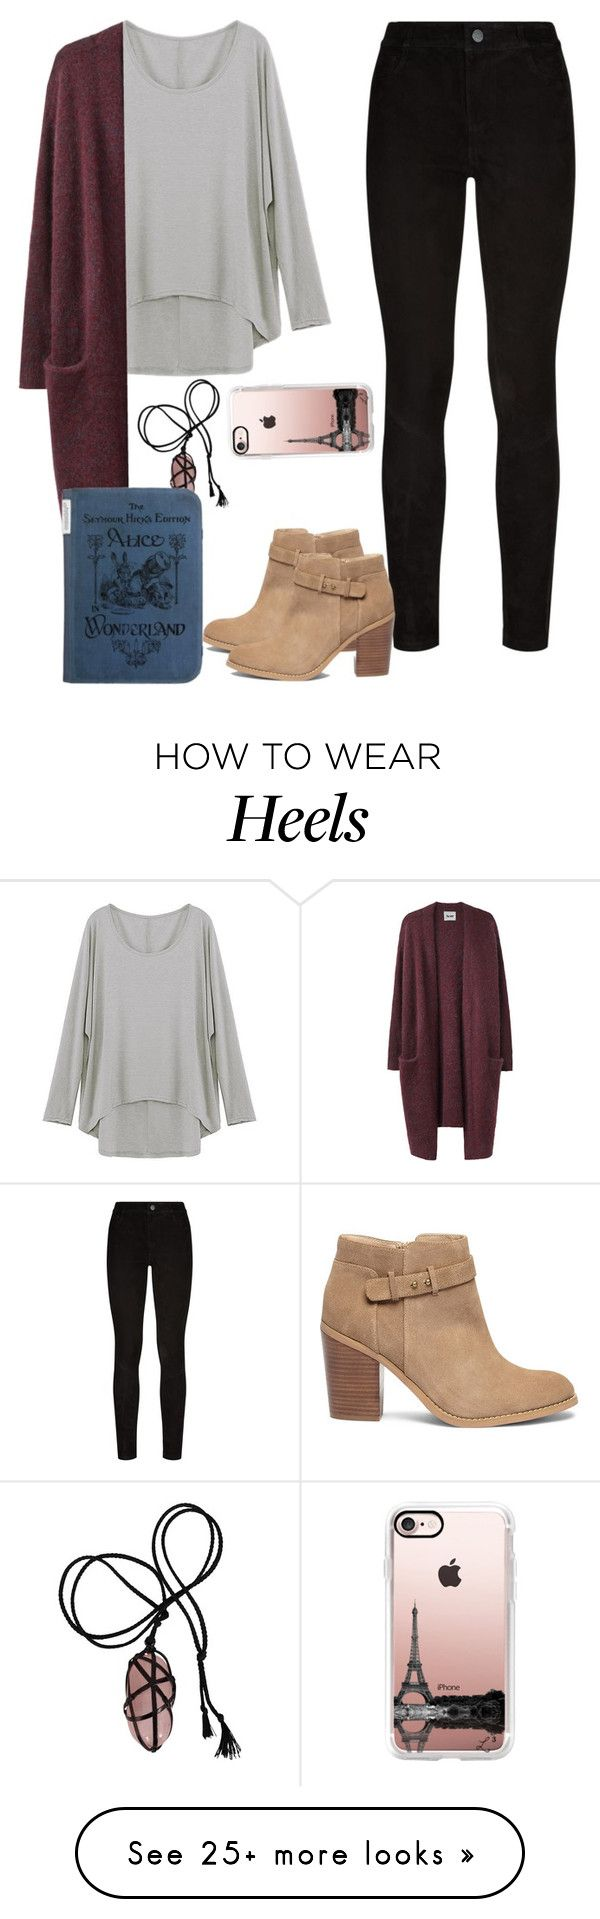 """Untitled #1666"" by blossomfade on Polyvore featuring Paige Denim, Acne Studios, Sole Society and Casetify"